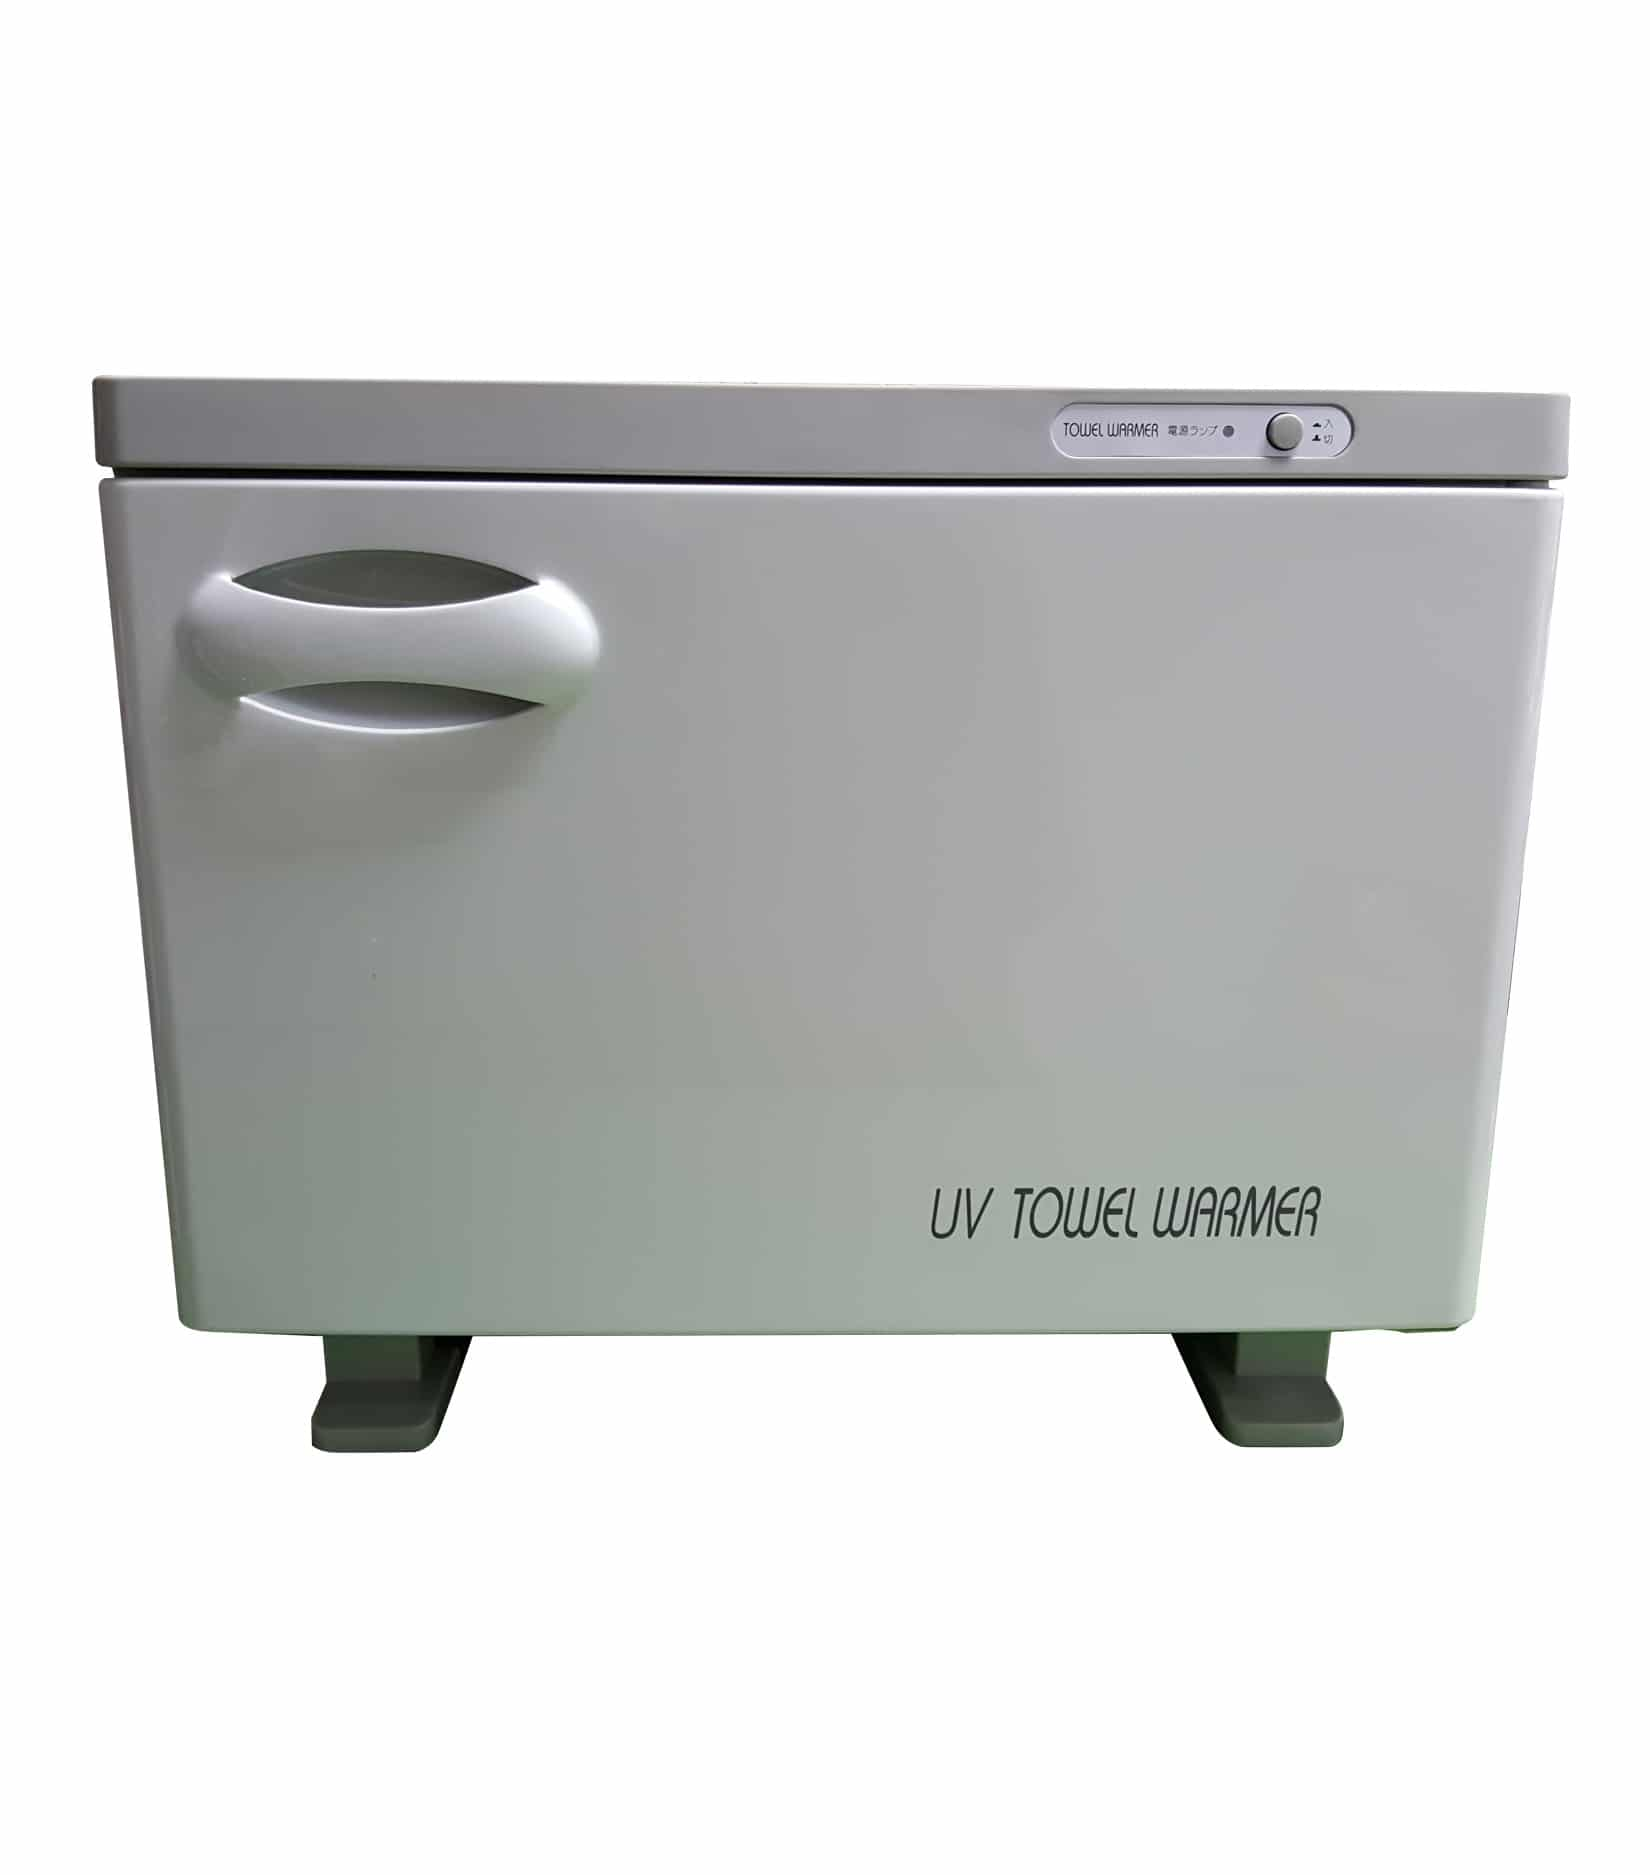 Barber Towel Warmer : uv towel warmer 180 00 this is one of the few hot towel cabis ...